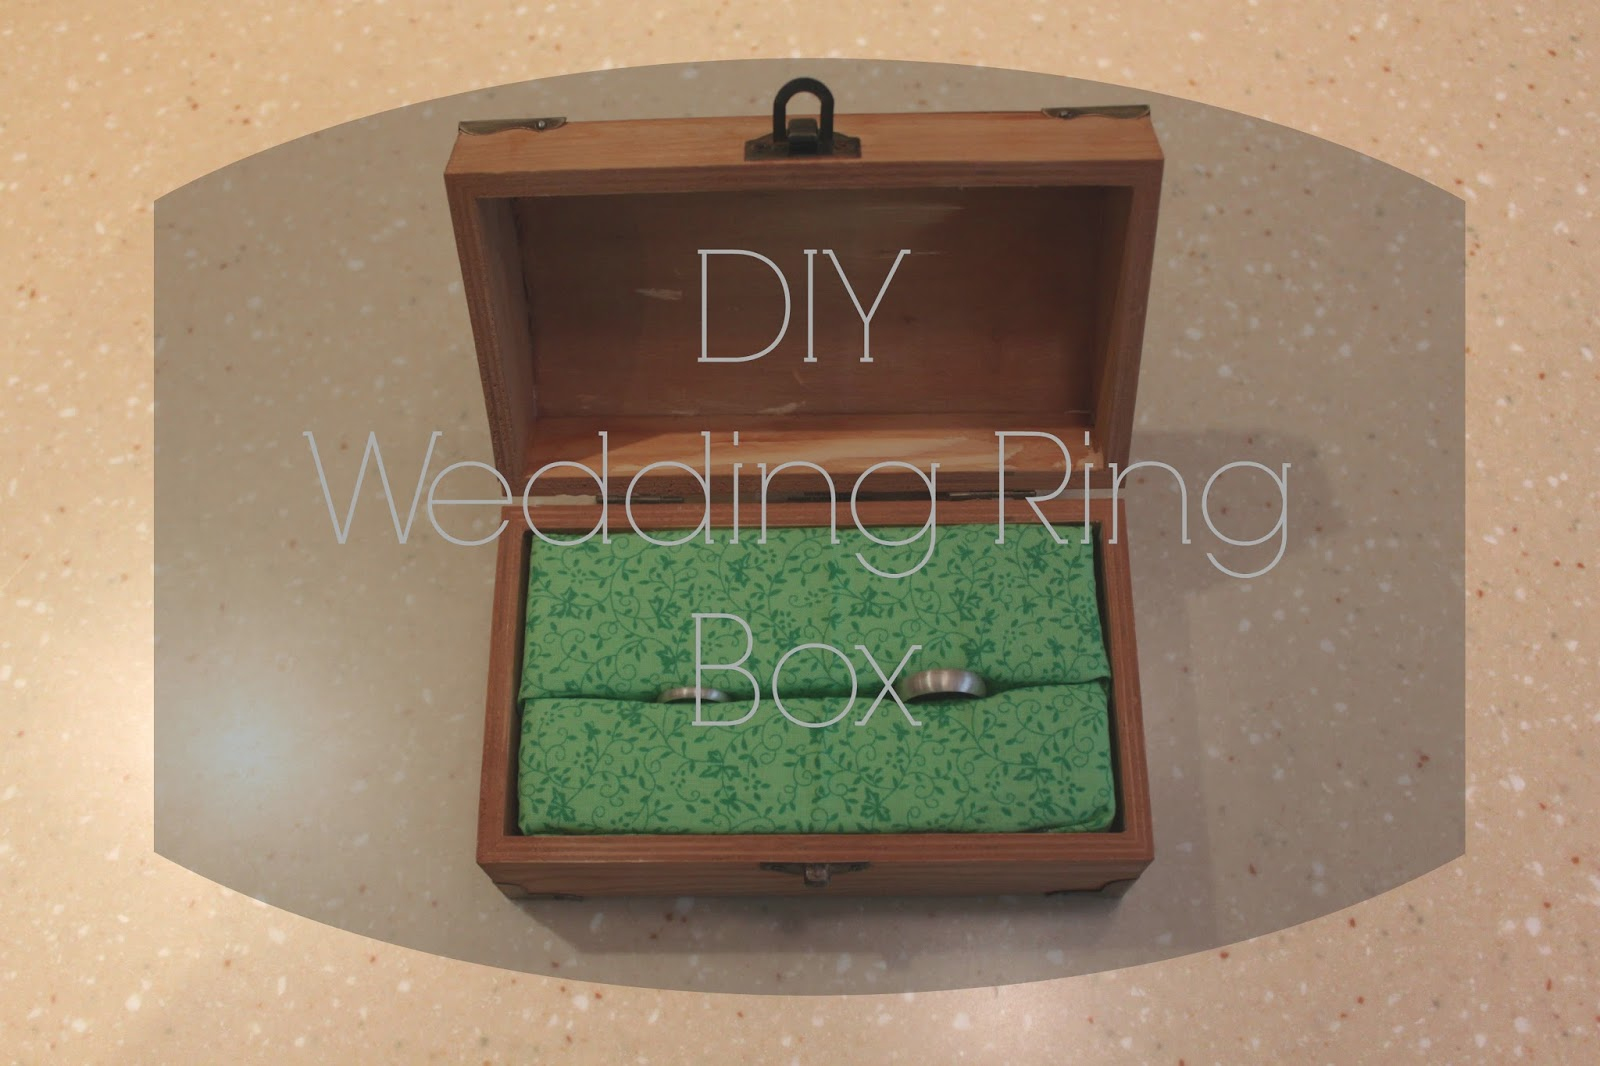 DIY Wedding Ring Box